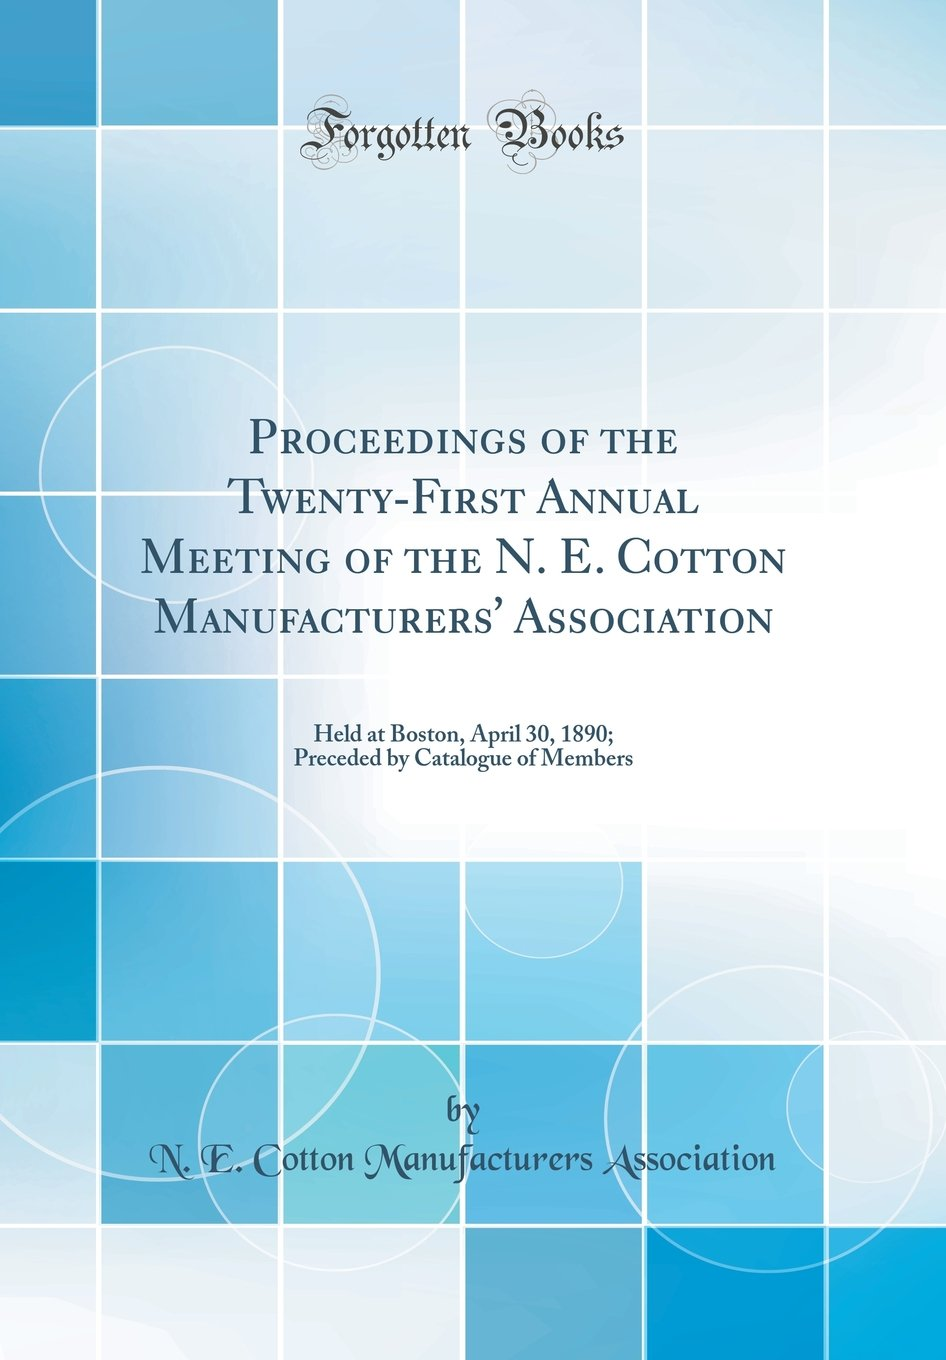 Proceedings of the Twenty-First Annual Meeting of the N. E. Cotton Manufacturers' Association: Held at Boston, April 30, 1890; Preceded by Catalogue of Members (Classic Reprint) pdf epub